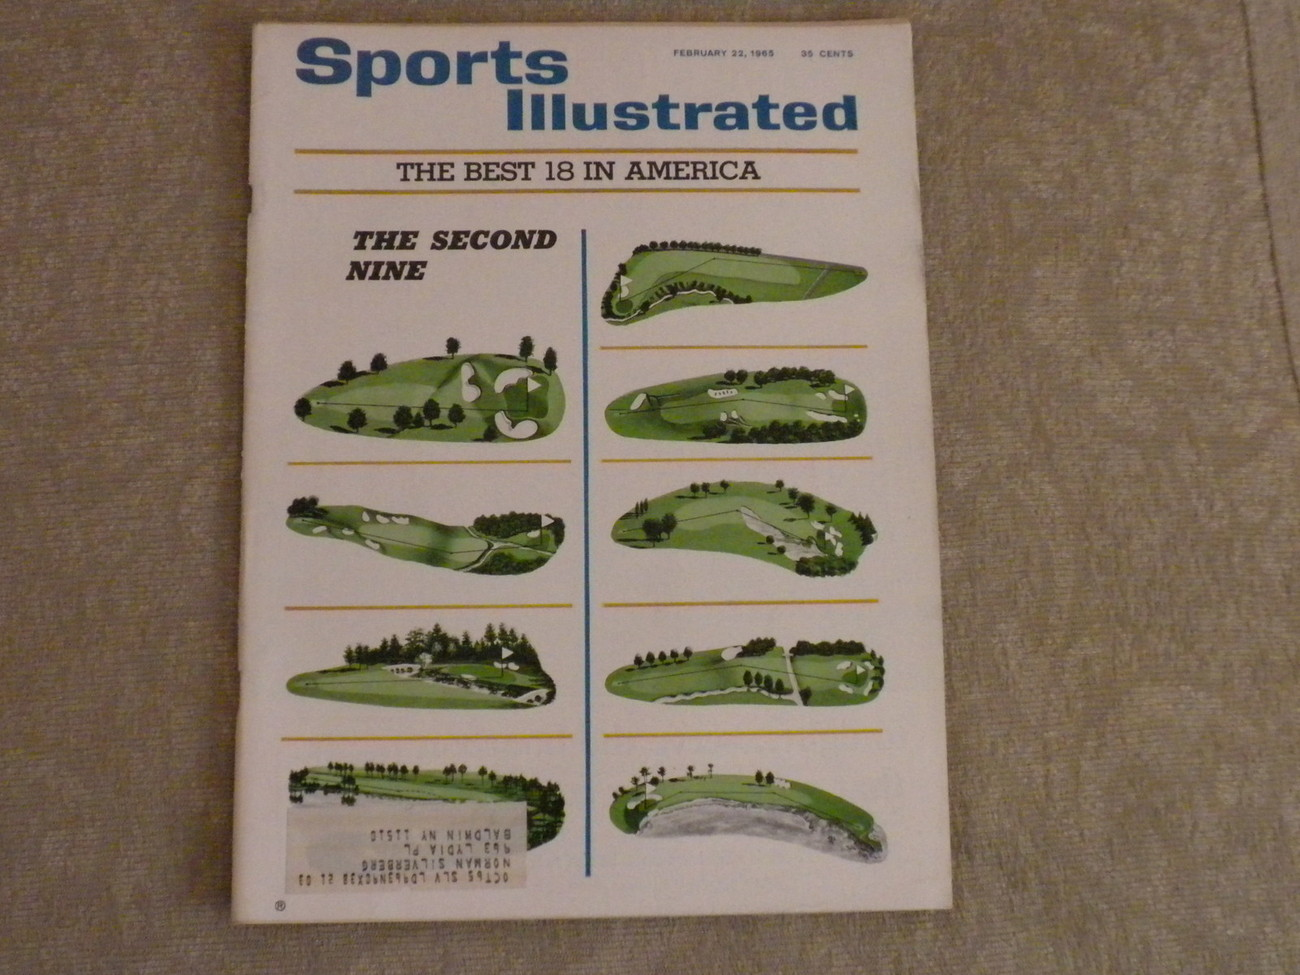 GOLF Sports Illustrated Feb 1965 Best 18: Second Nine; Peter Snell, Daytona